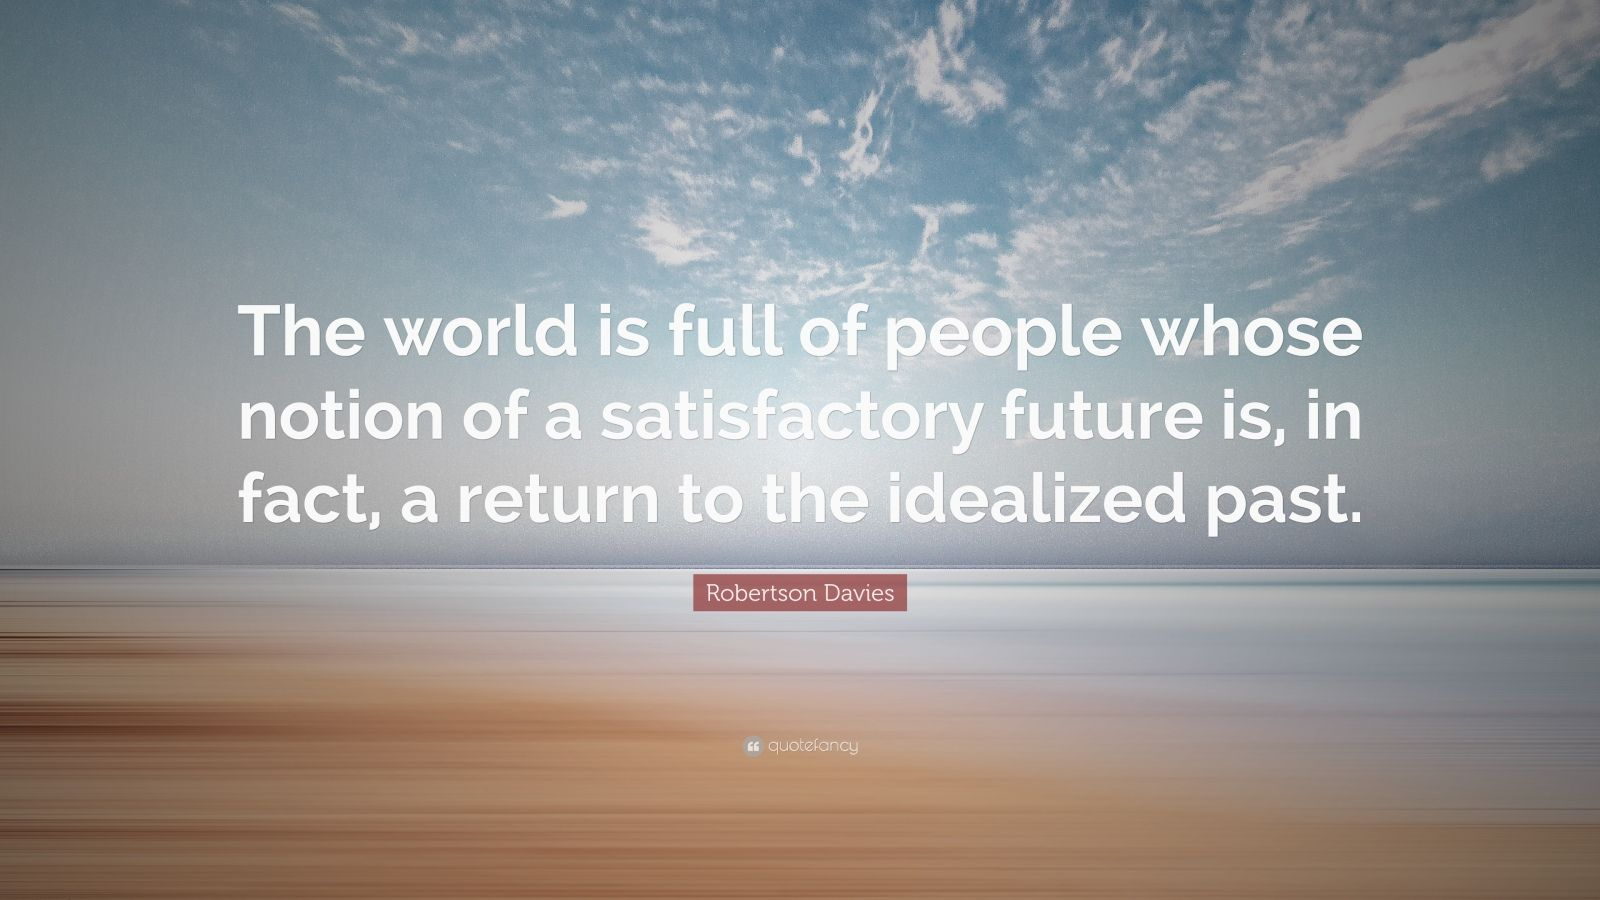 """Robertson Davies Quote: """"The world is full of people whose notion of a satisfactory future is, in fact, a return to the idealized past."""""""